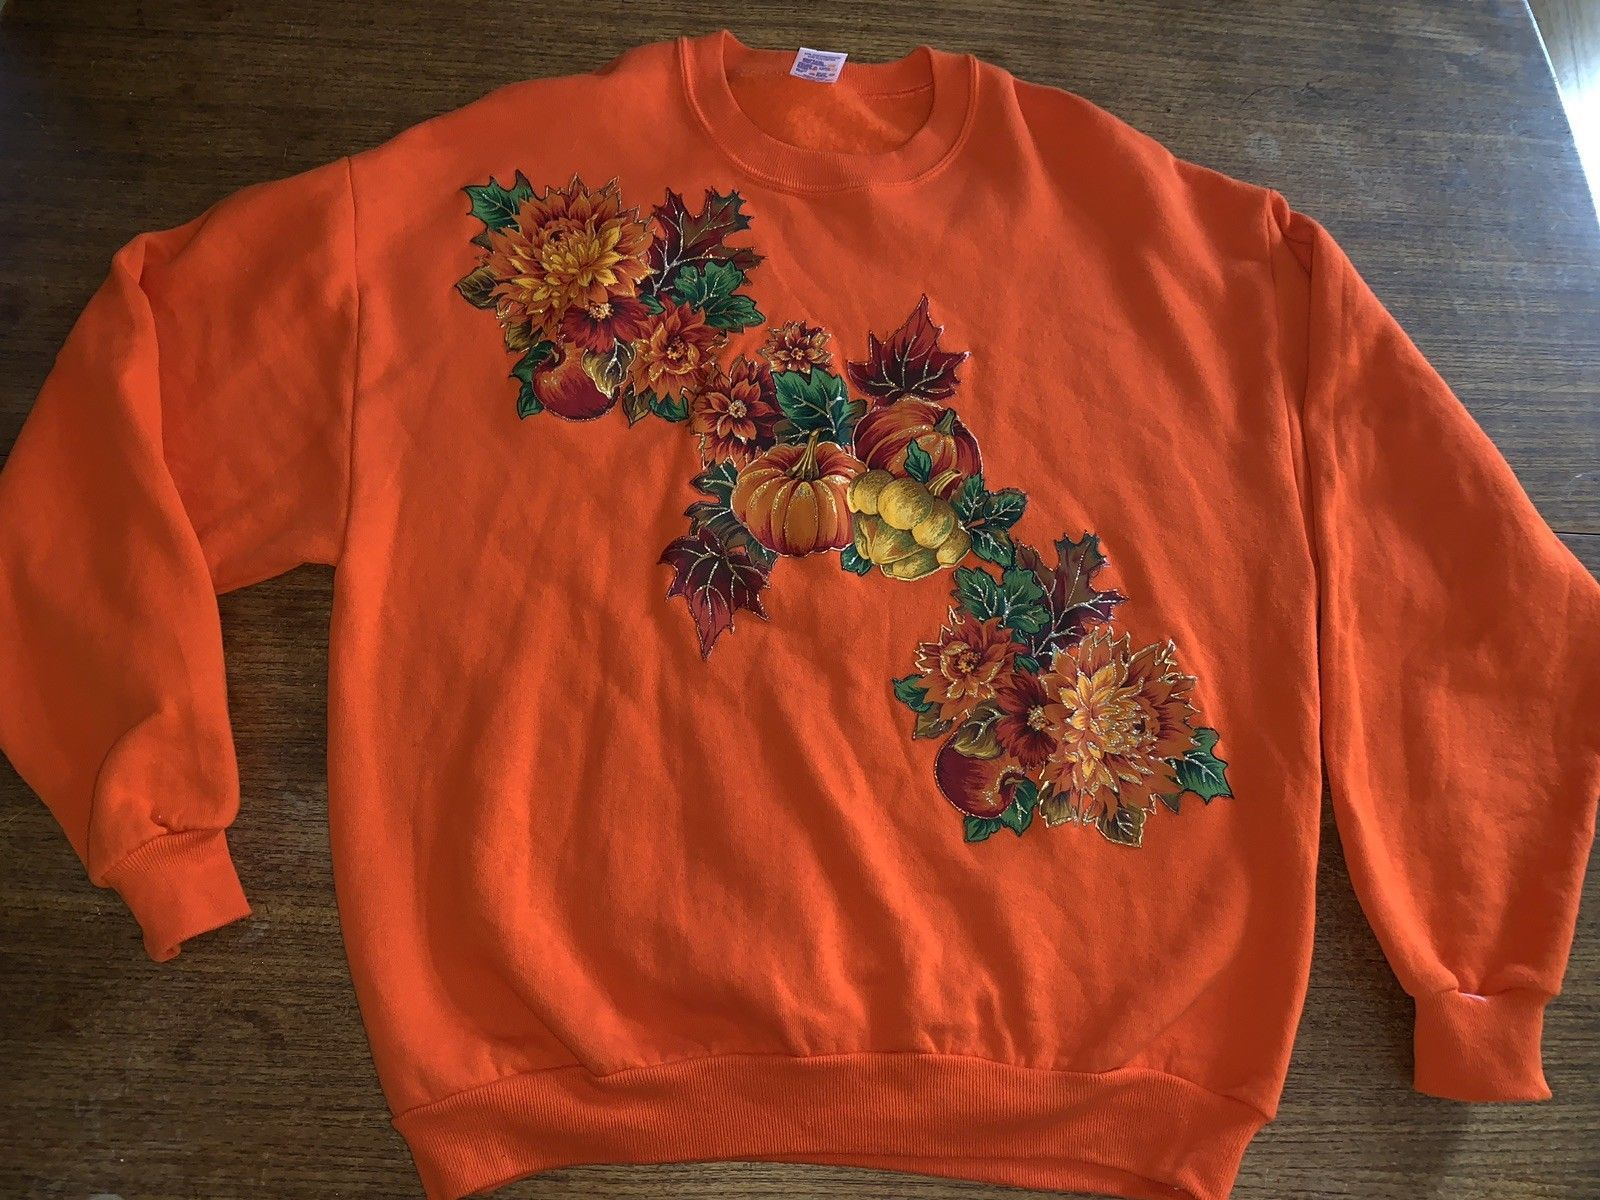 Autumn sweatshirt Orange Pumpkins Leaves Vintage XL USA Ugly Halloween